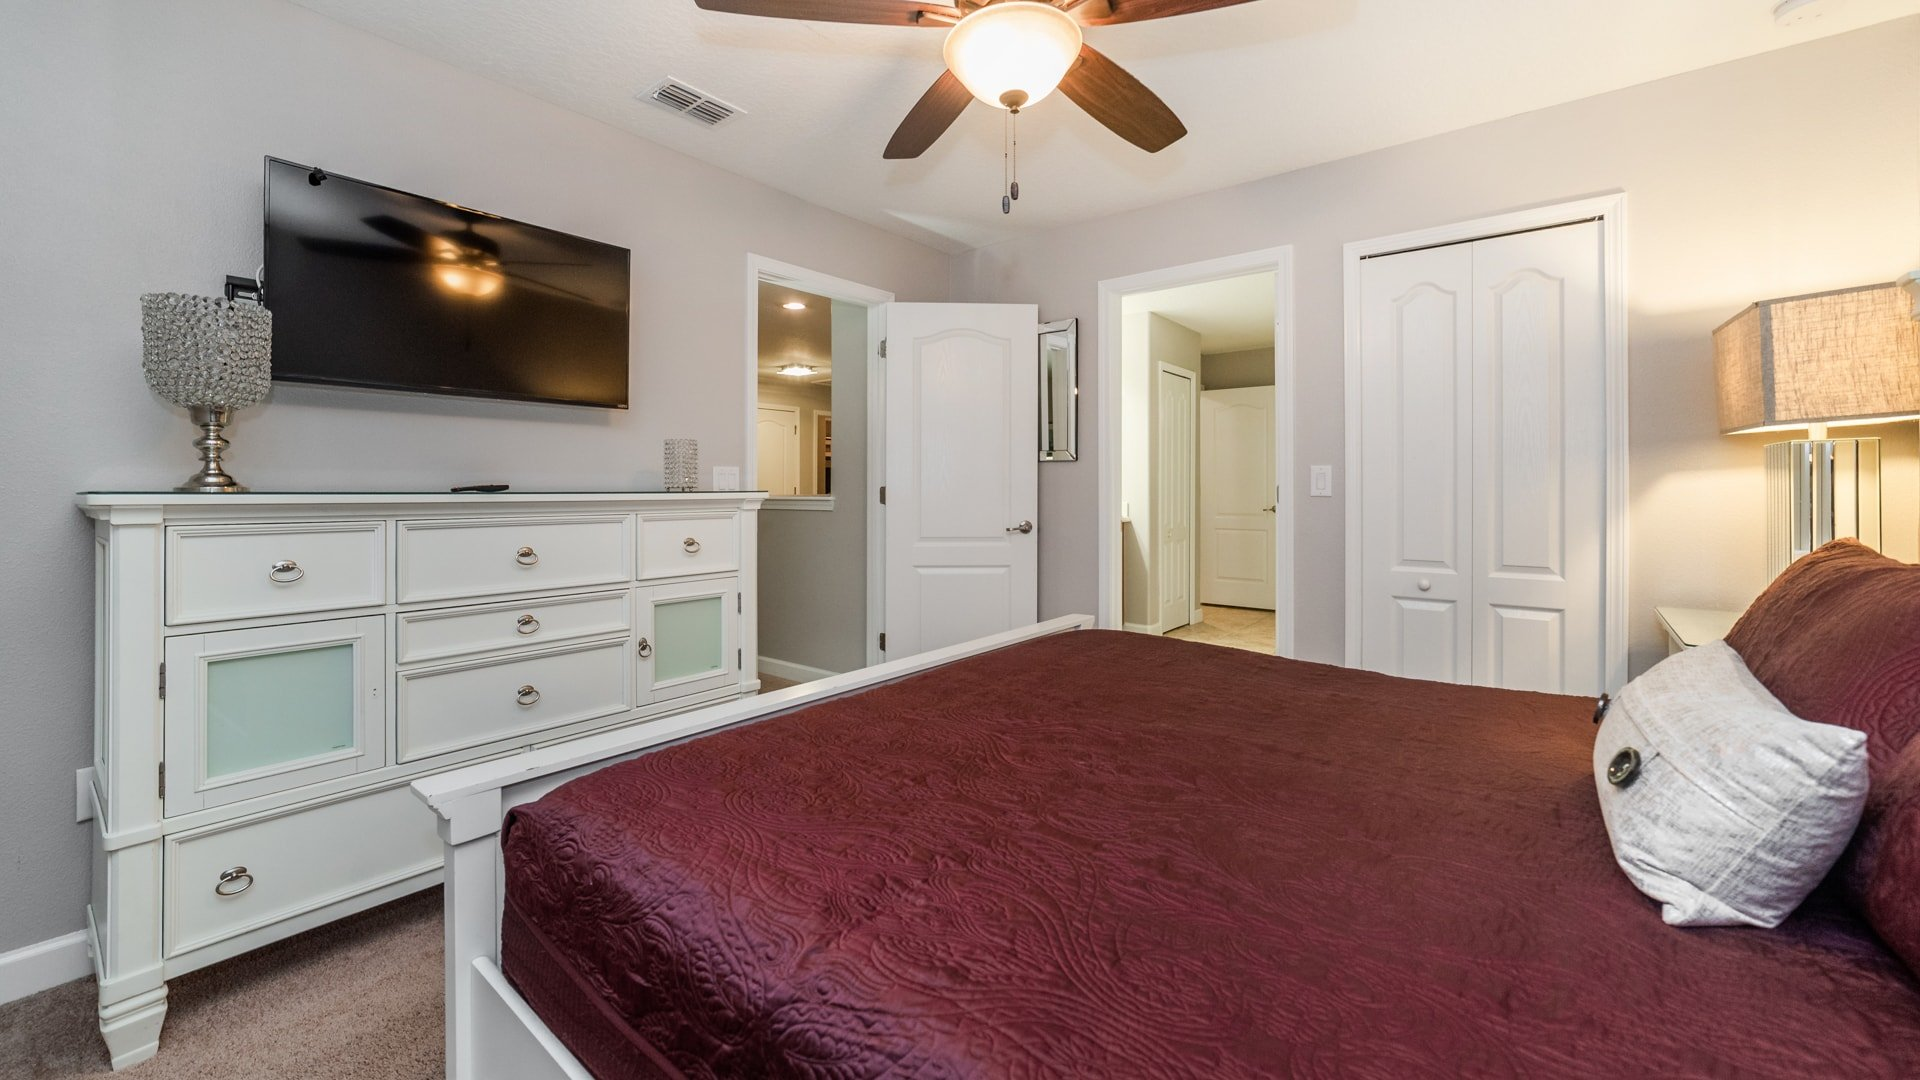 1492 Moon Valley Drive-209845